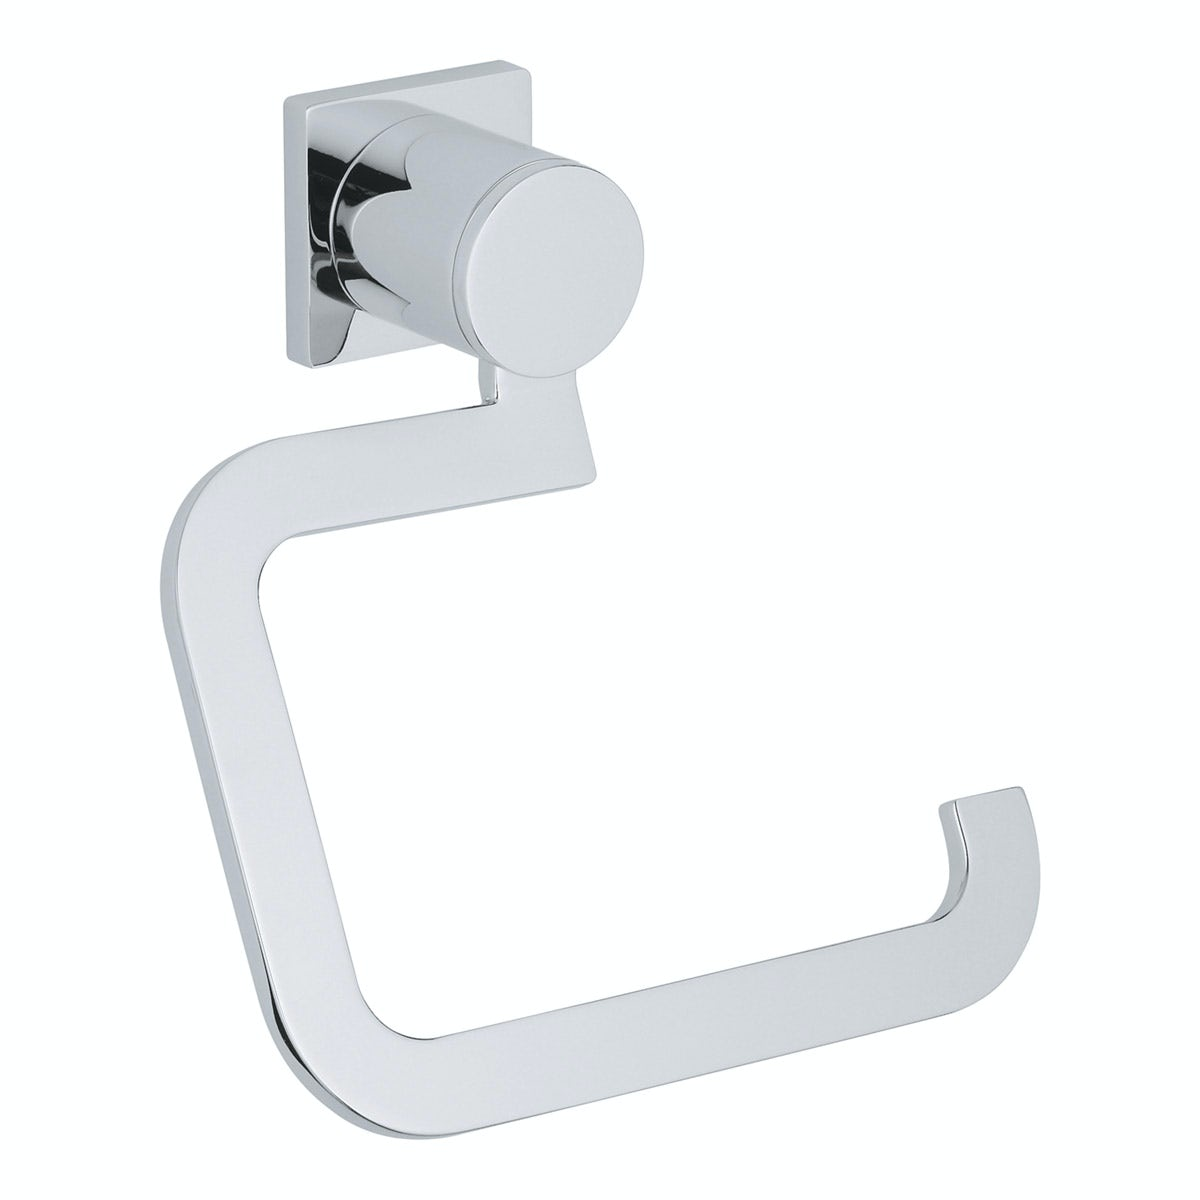 Grohe Allure toilet roll holder